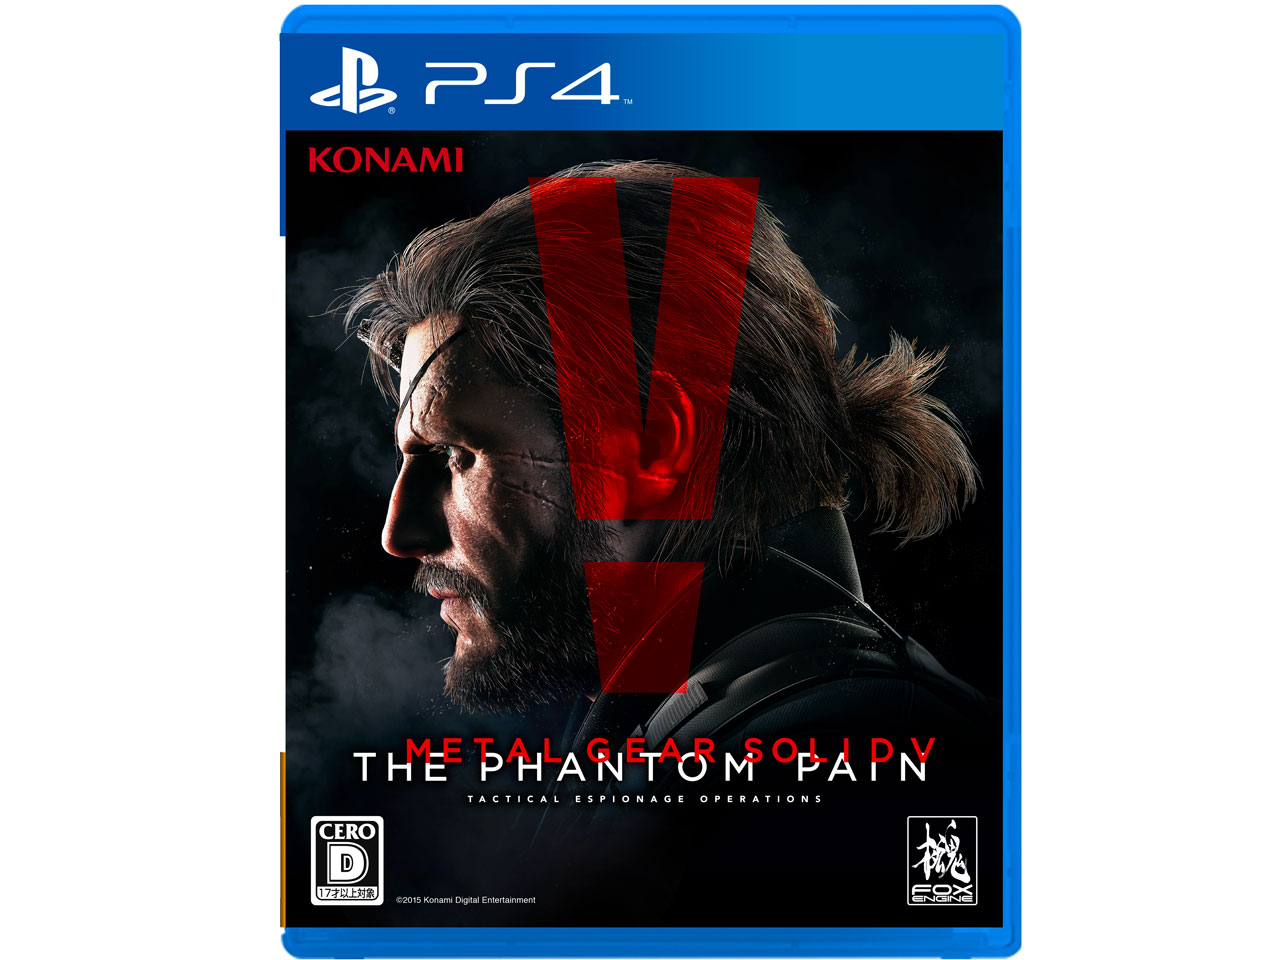 METAL GEAR SOLID V: THE PHANTOM PAIN [通常版] [PS4] の製品画像